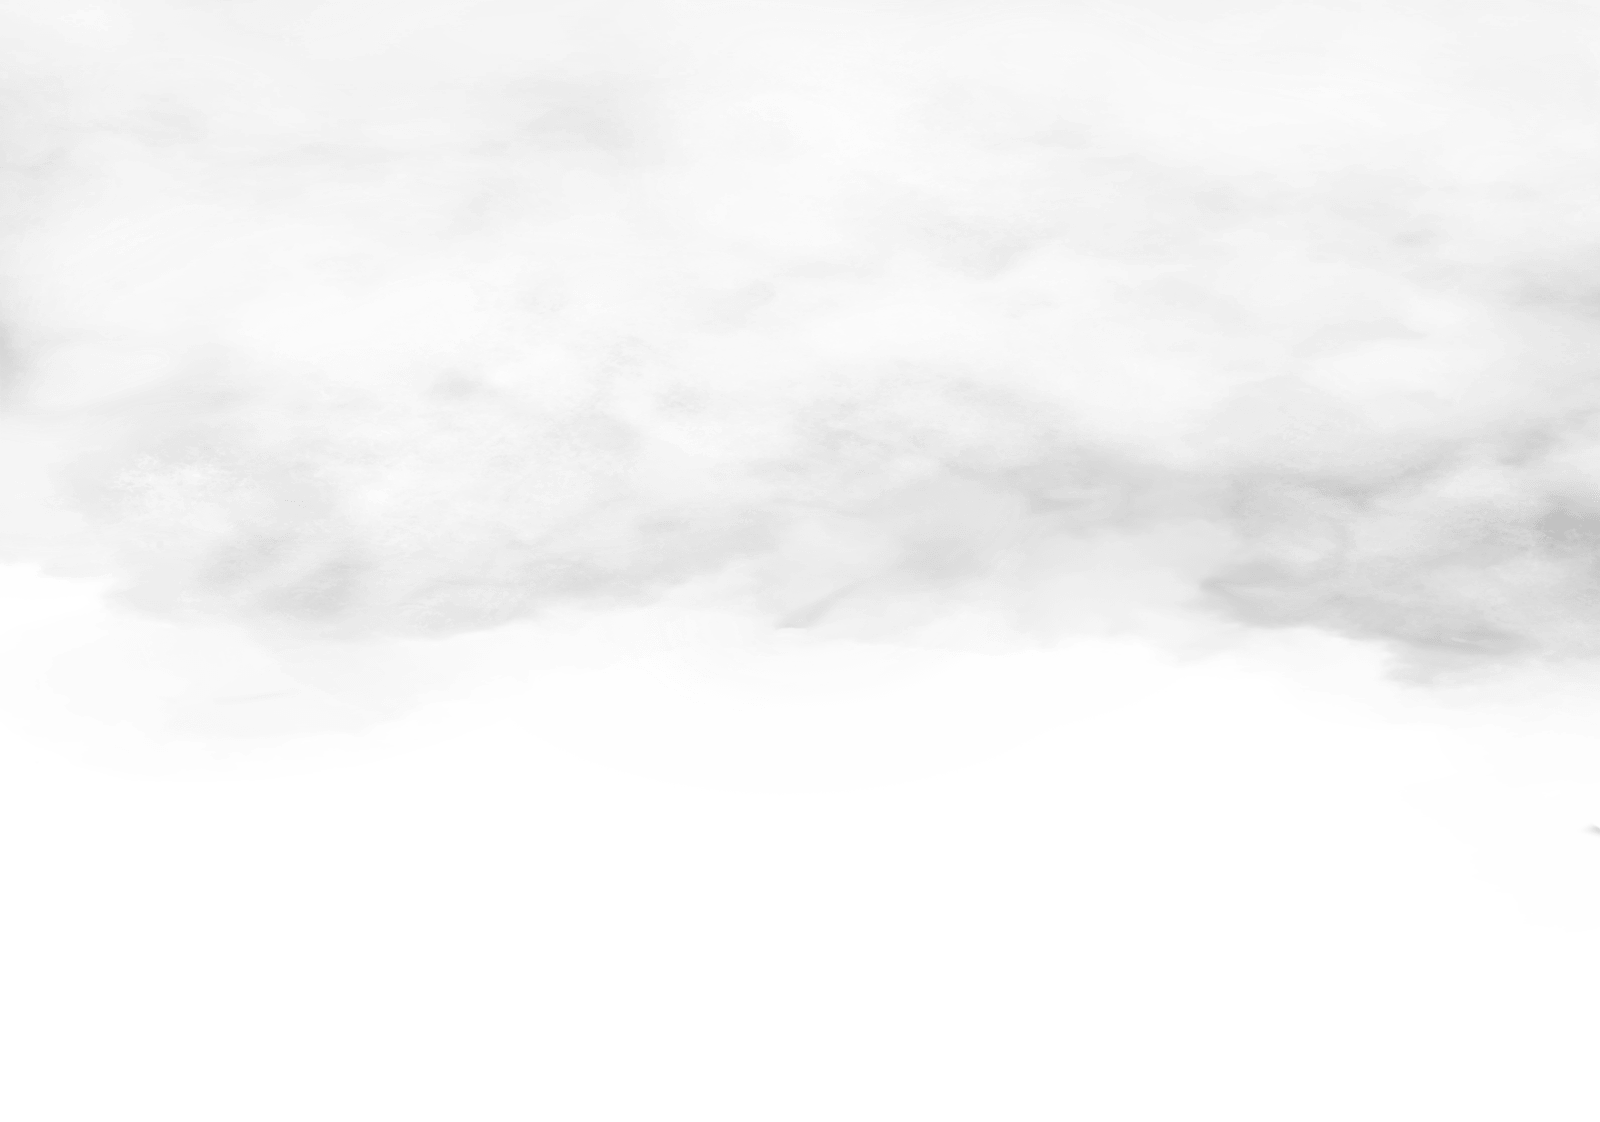 Clouds transparent images stickpng. Fog texture png picture free download